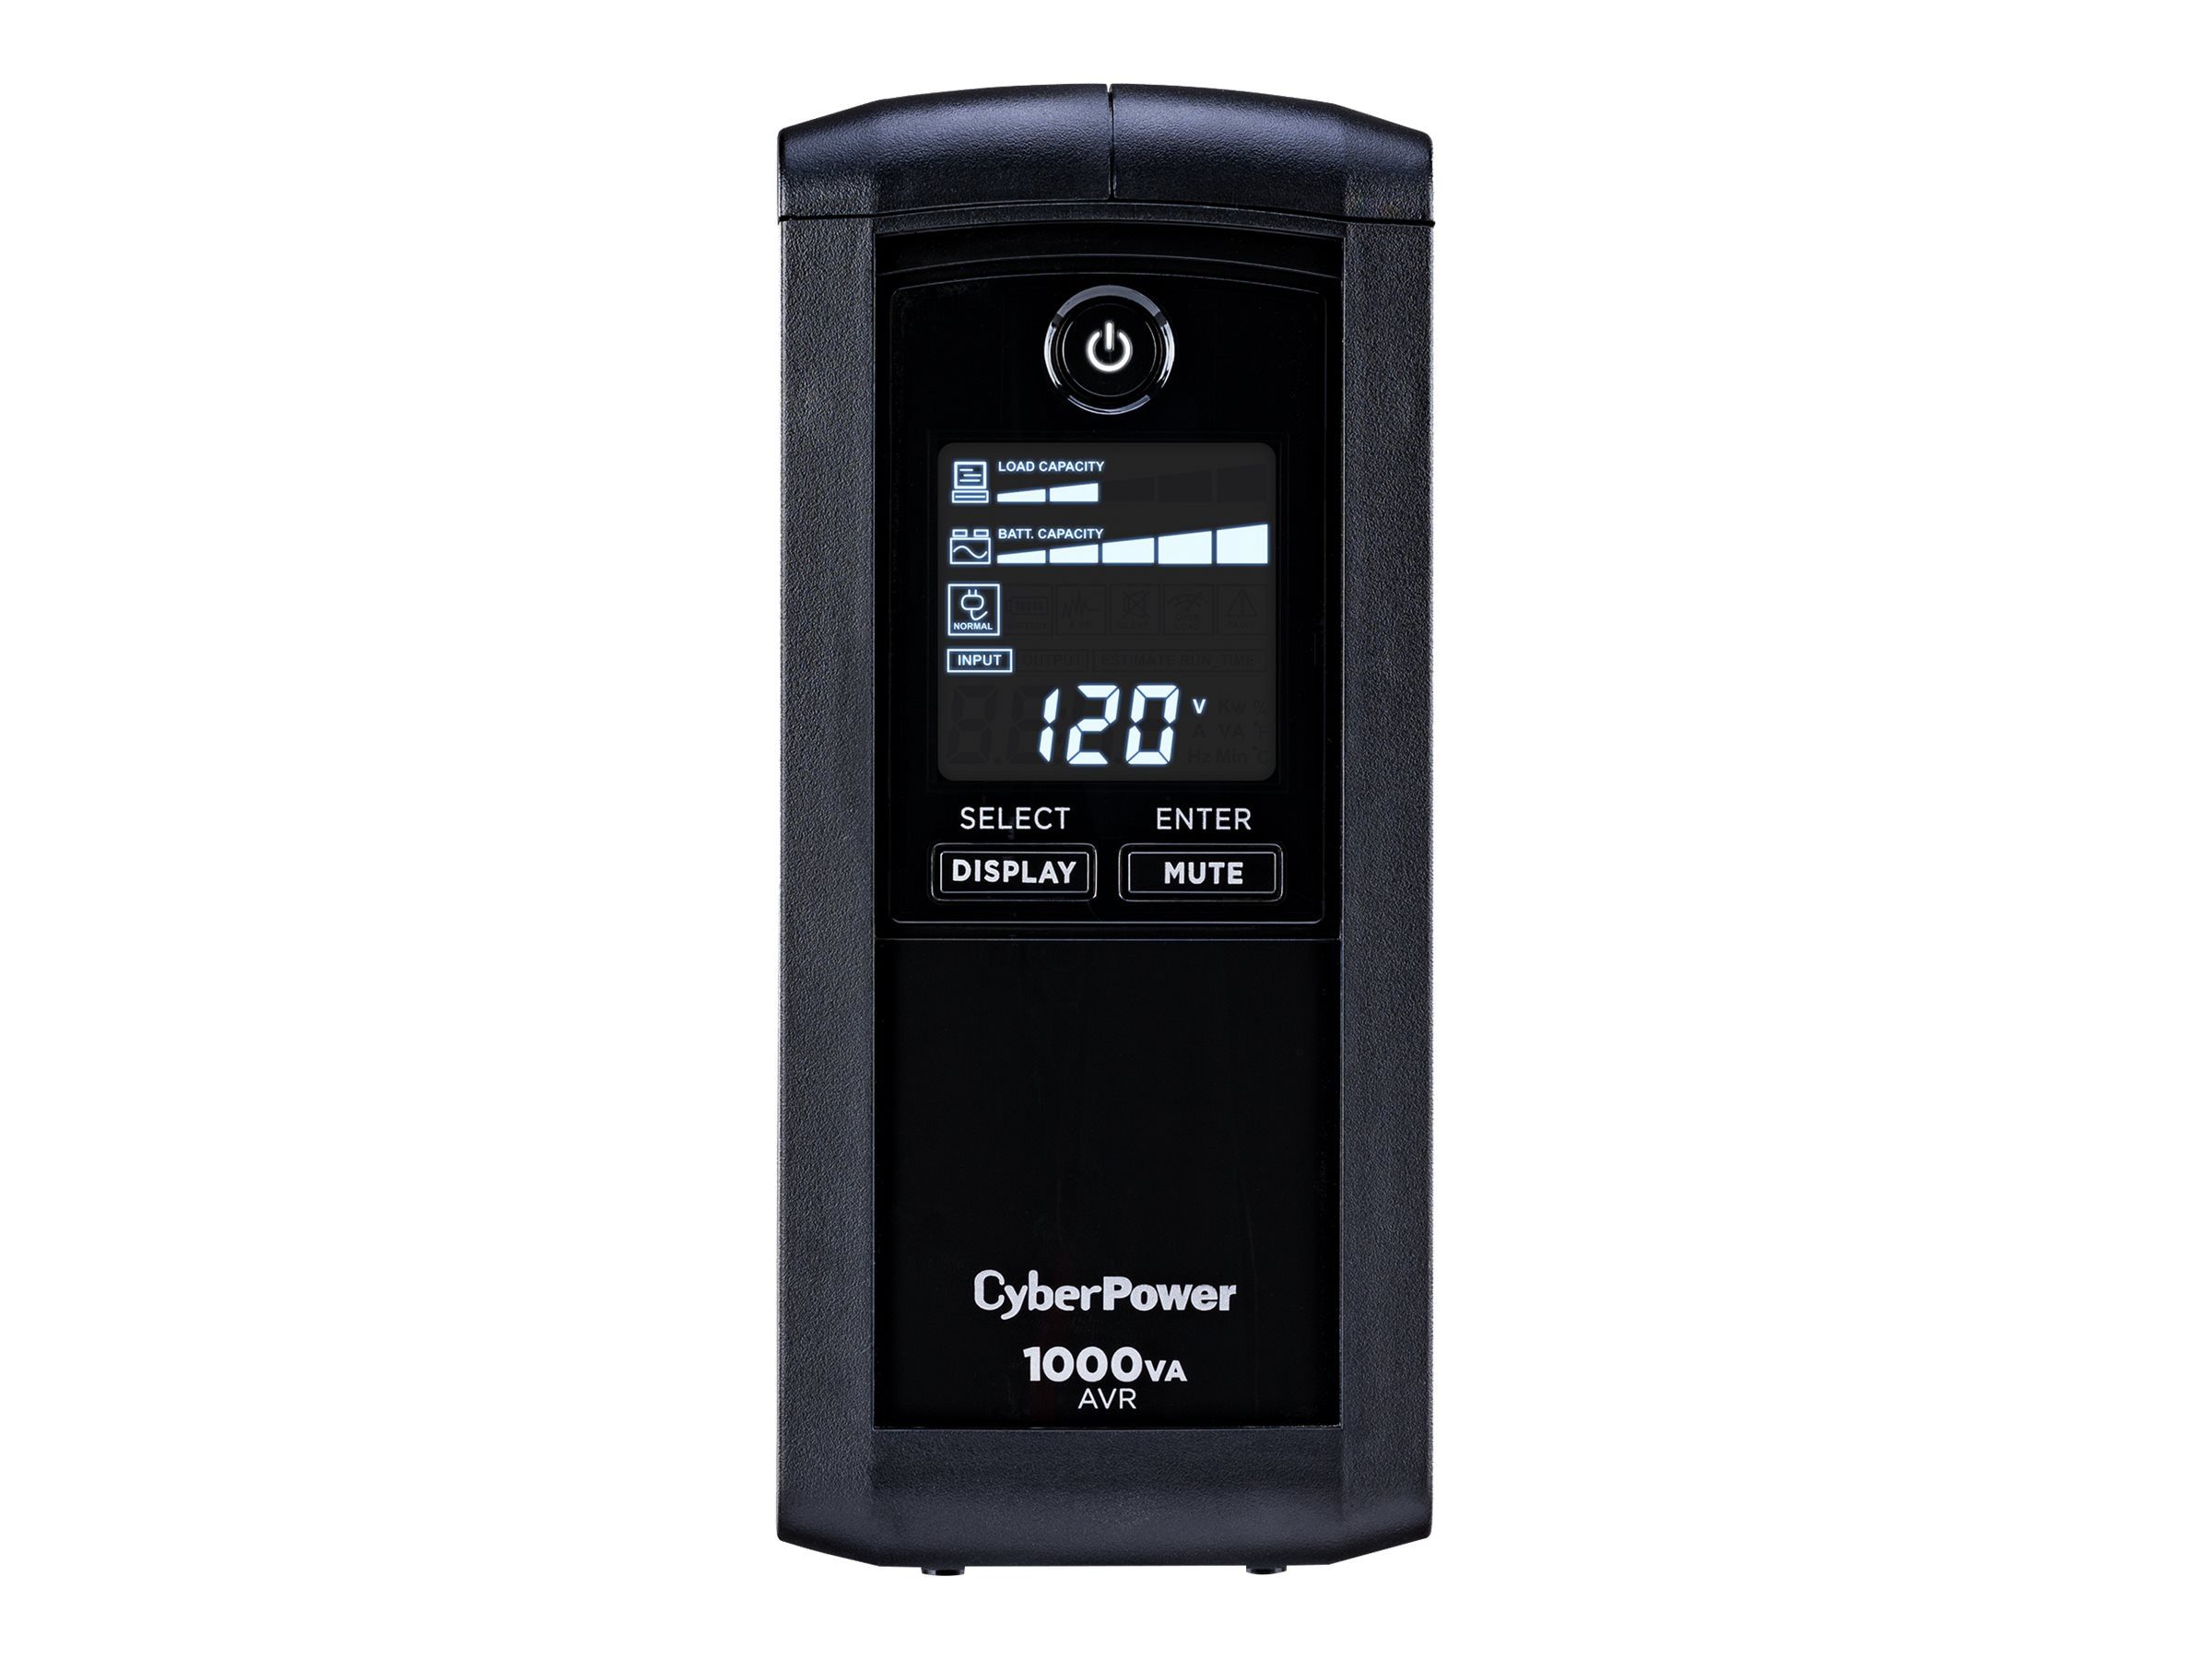 CyberPower 1000VA 600W AVR (9) Outlet RJ-11 RJ-45 Coax Tower LCD Display, CP1000AVRLCD